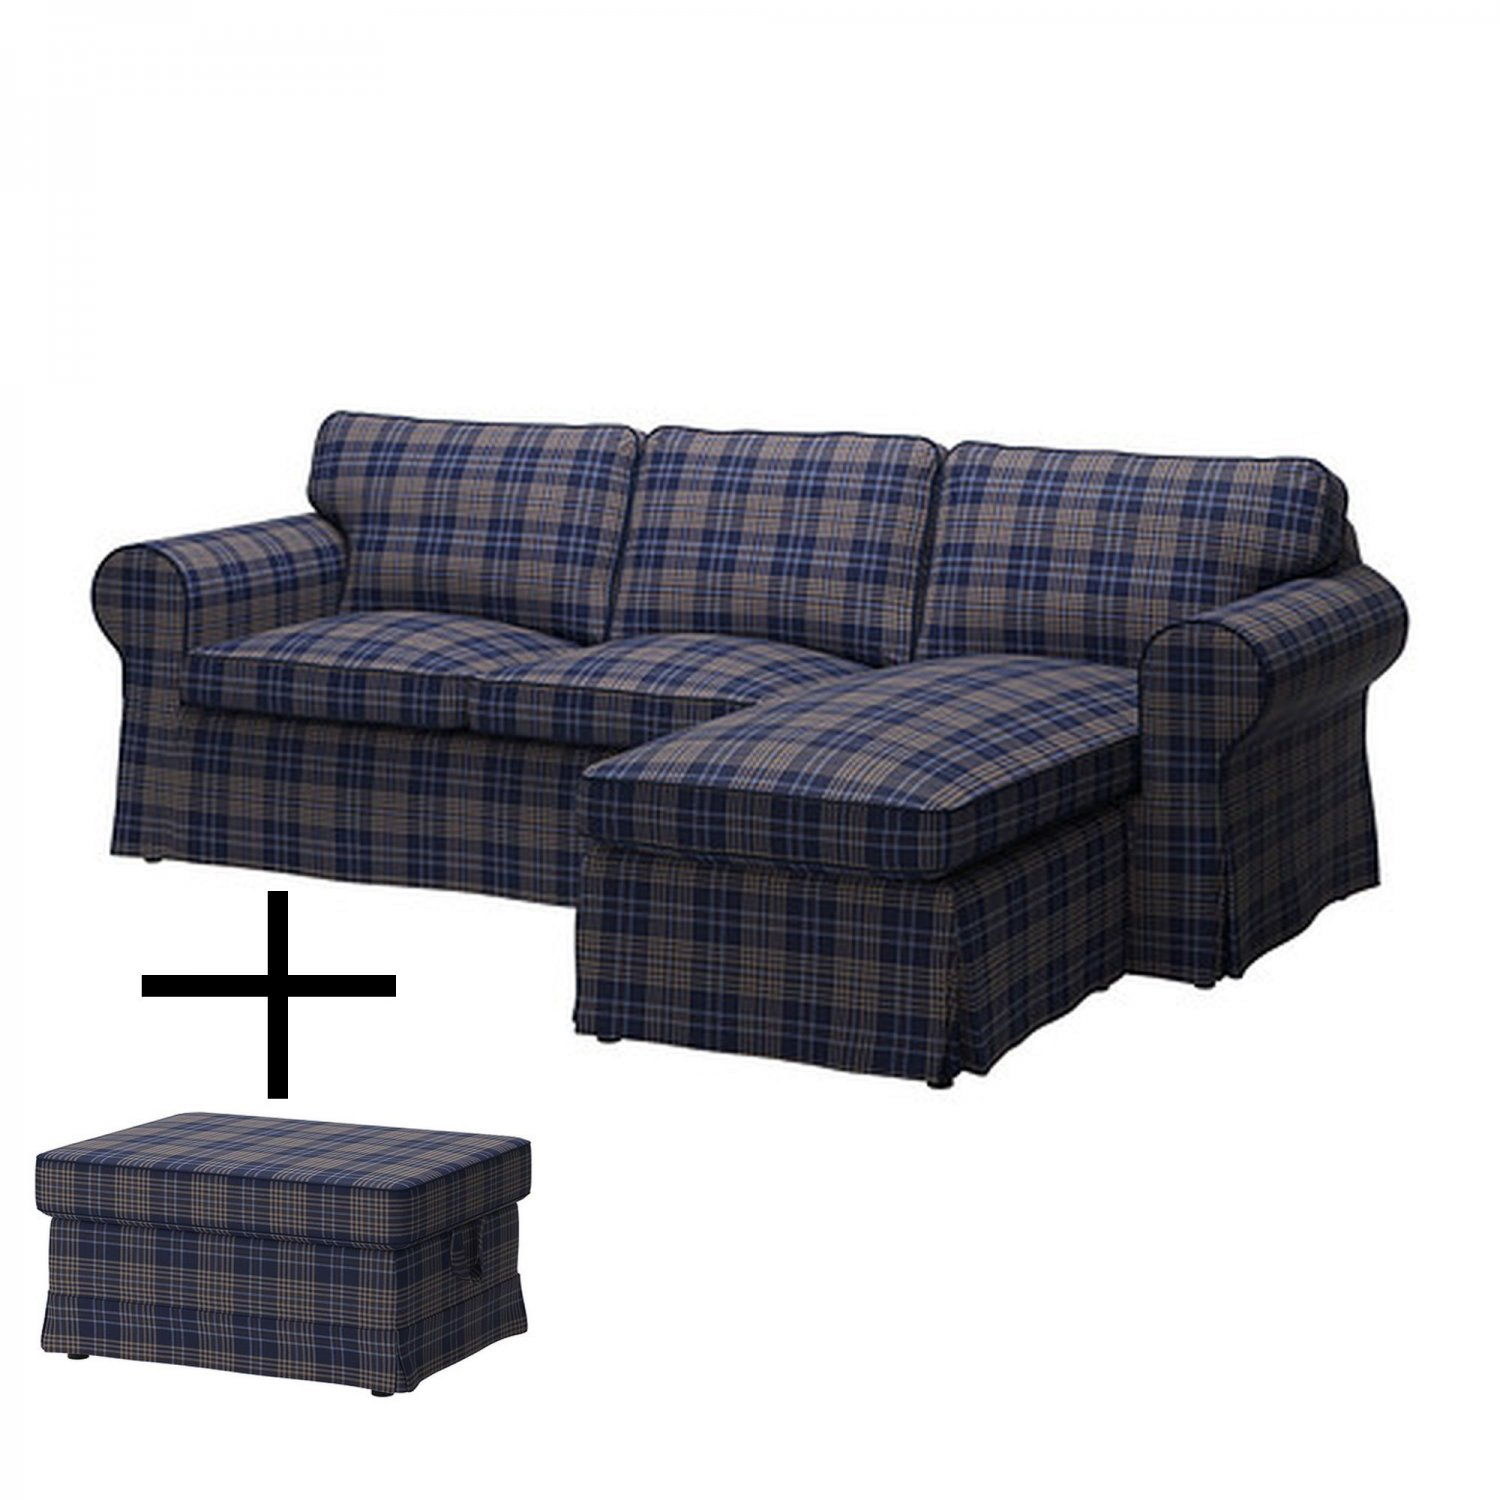 Ikea Ektorp Loveseat Sofa With Chaise And Footstool